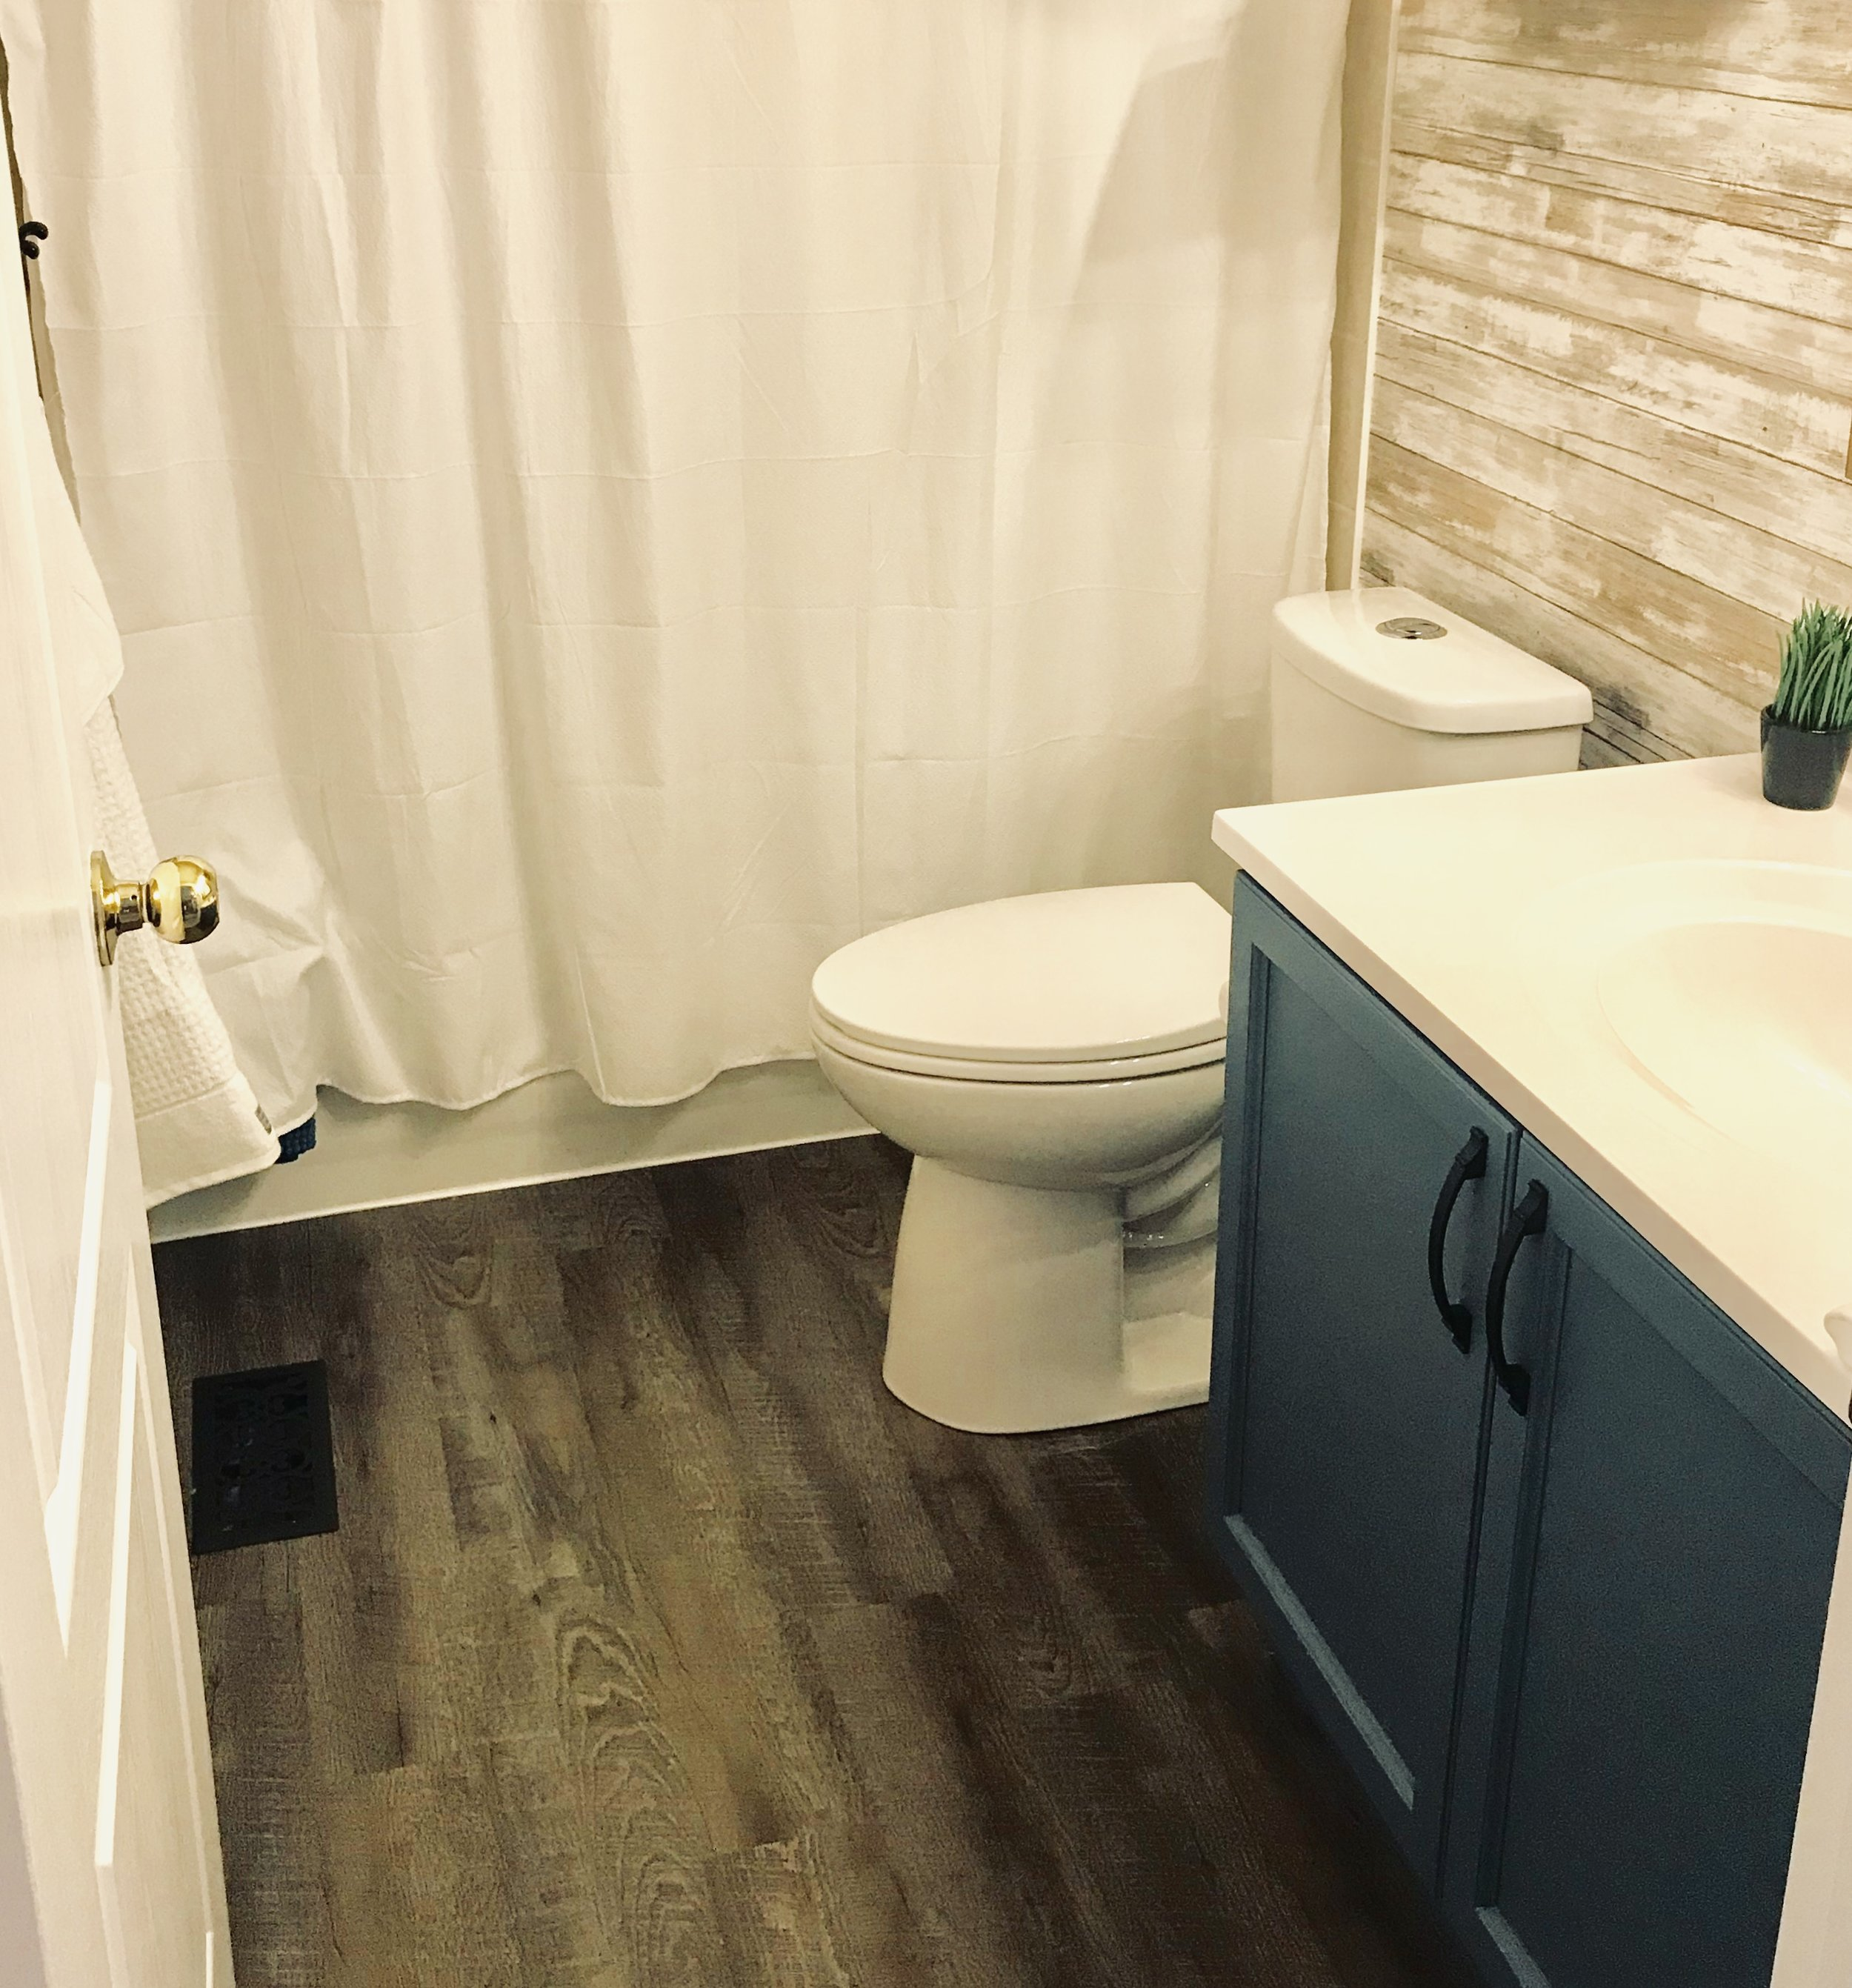 Vinyl Plank Flooring is the perfect option for bathrooms when you do not want to add tile